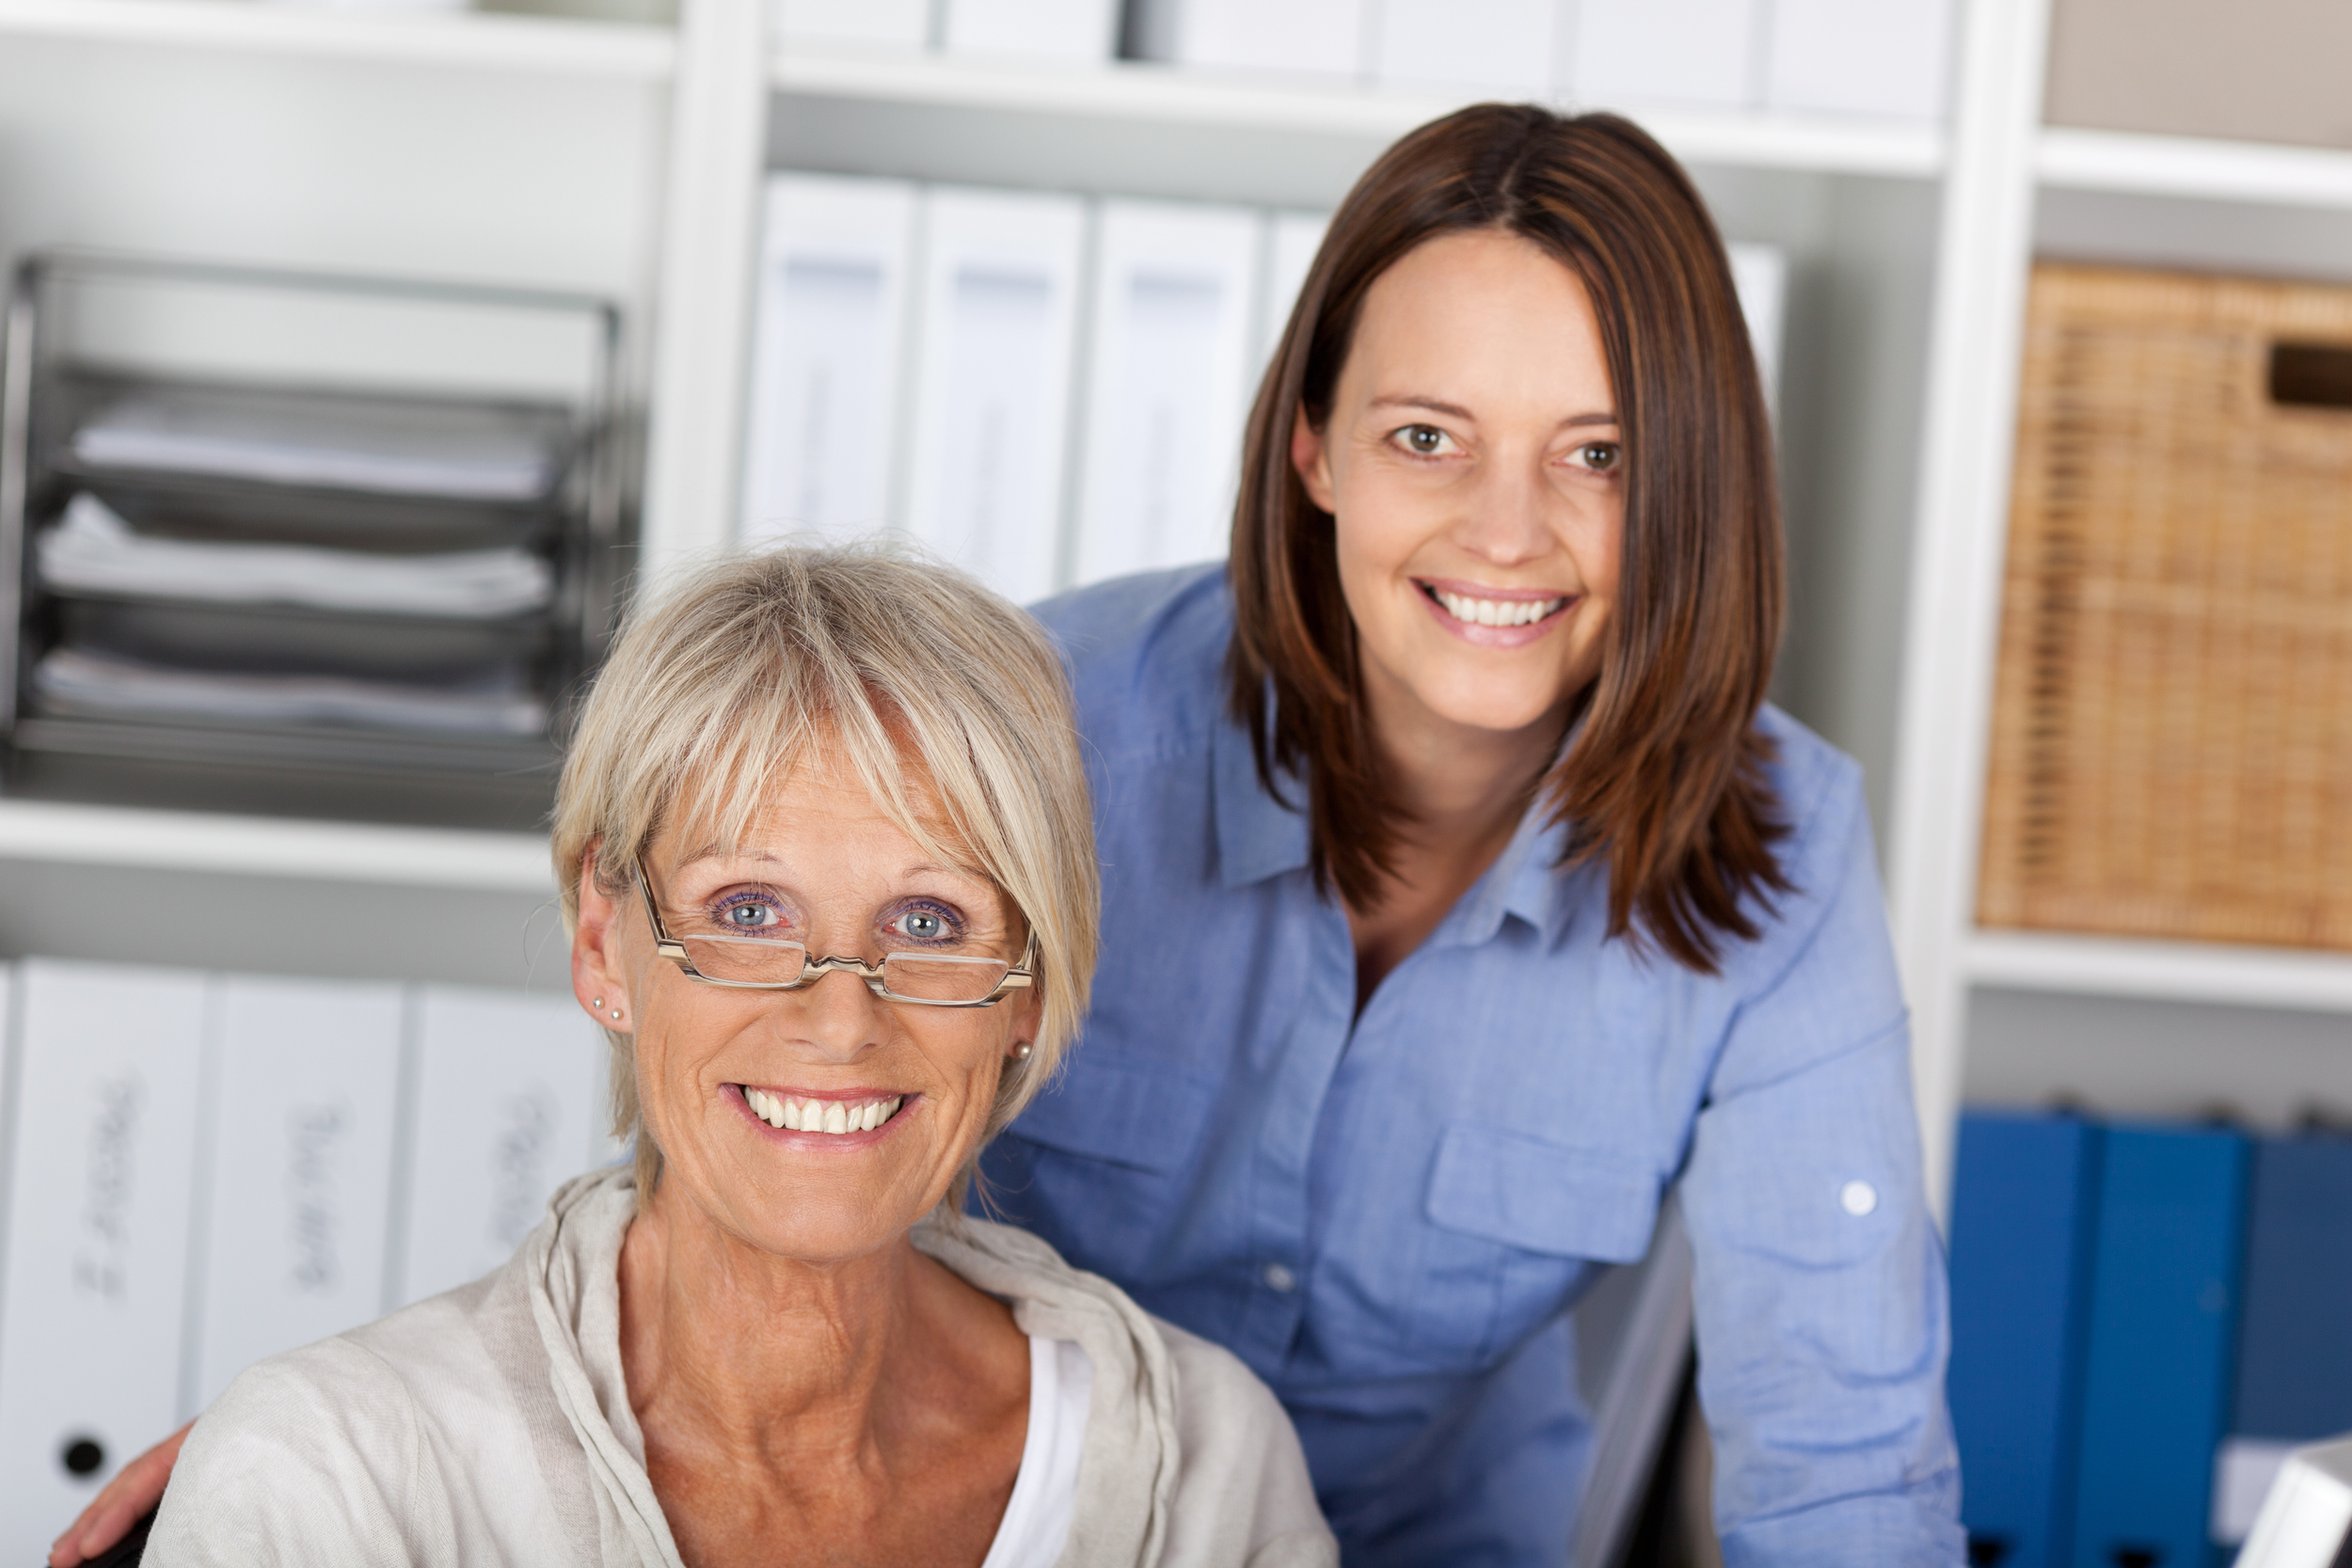 Image: For women planning for retirement may still very well involve work